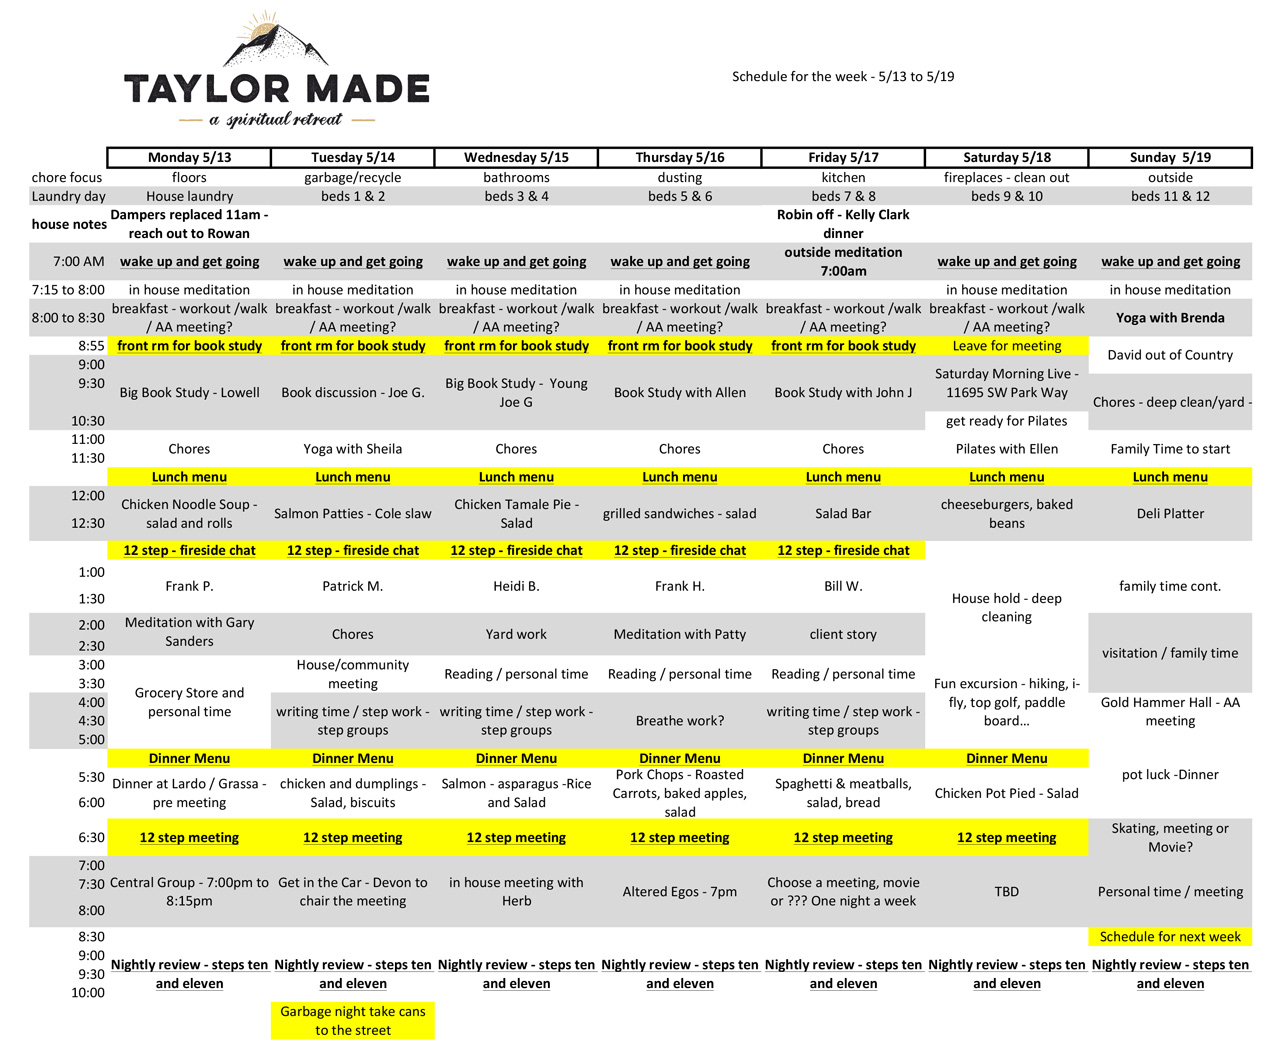 Taylor Made Retreat schedule sample